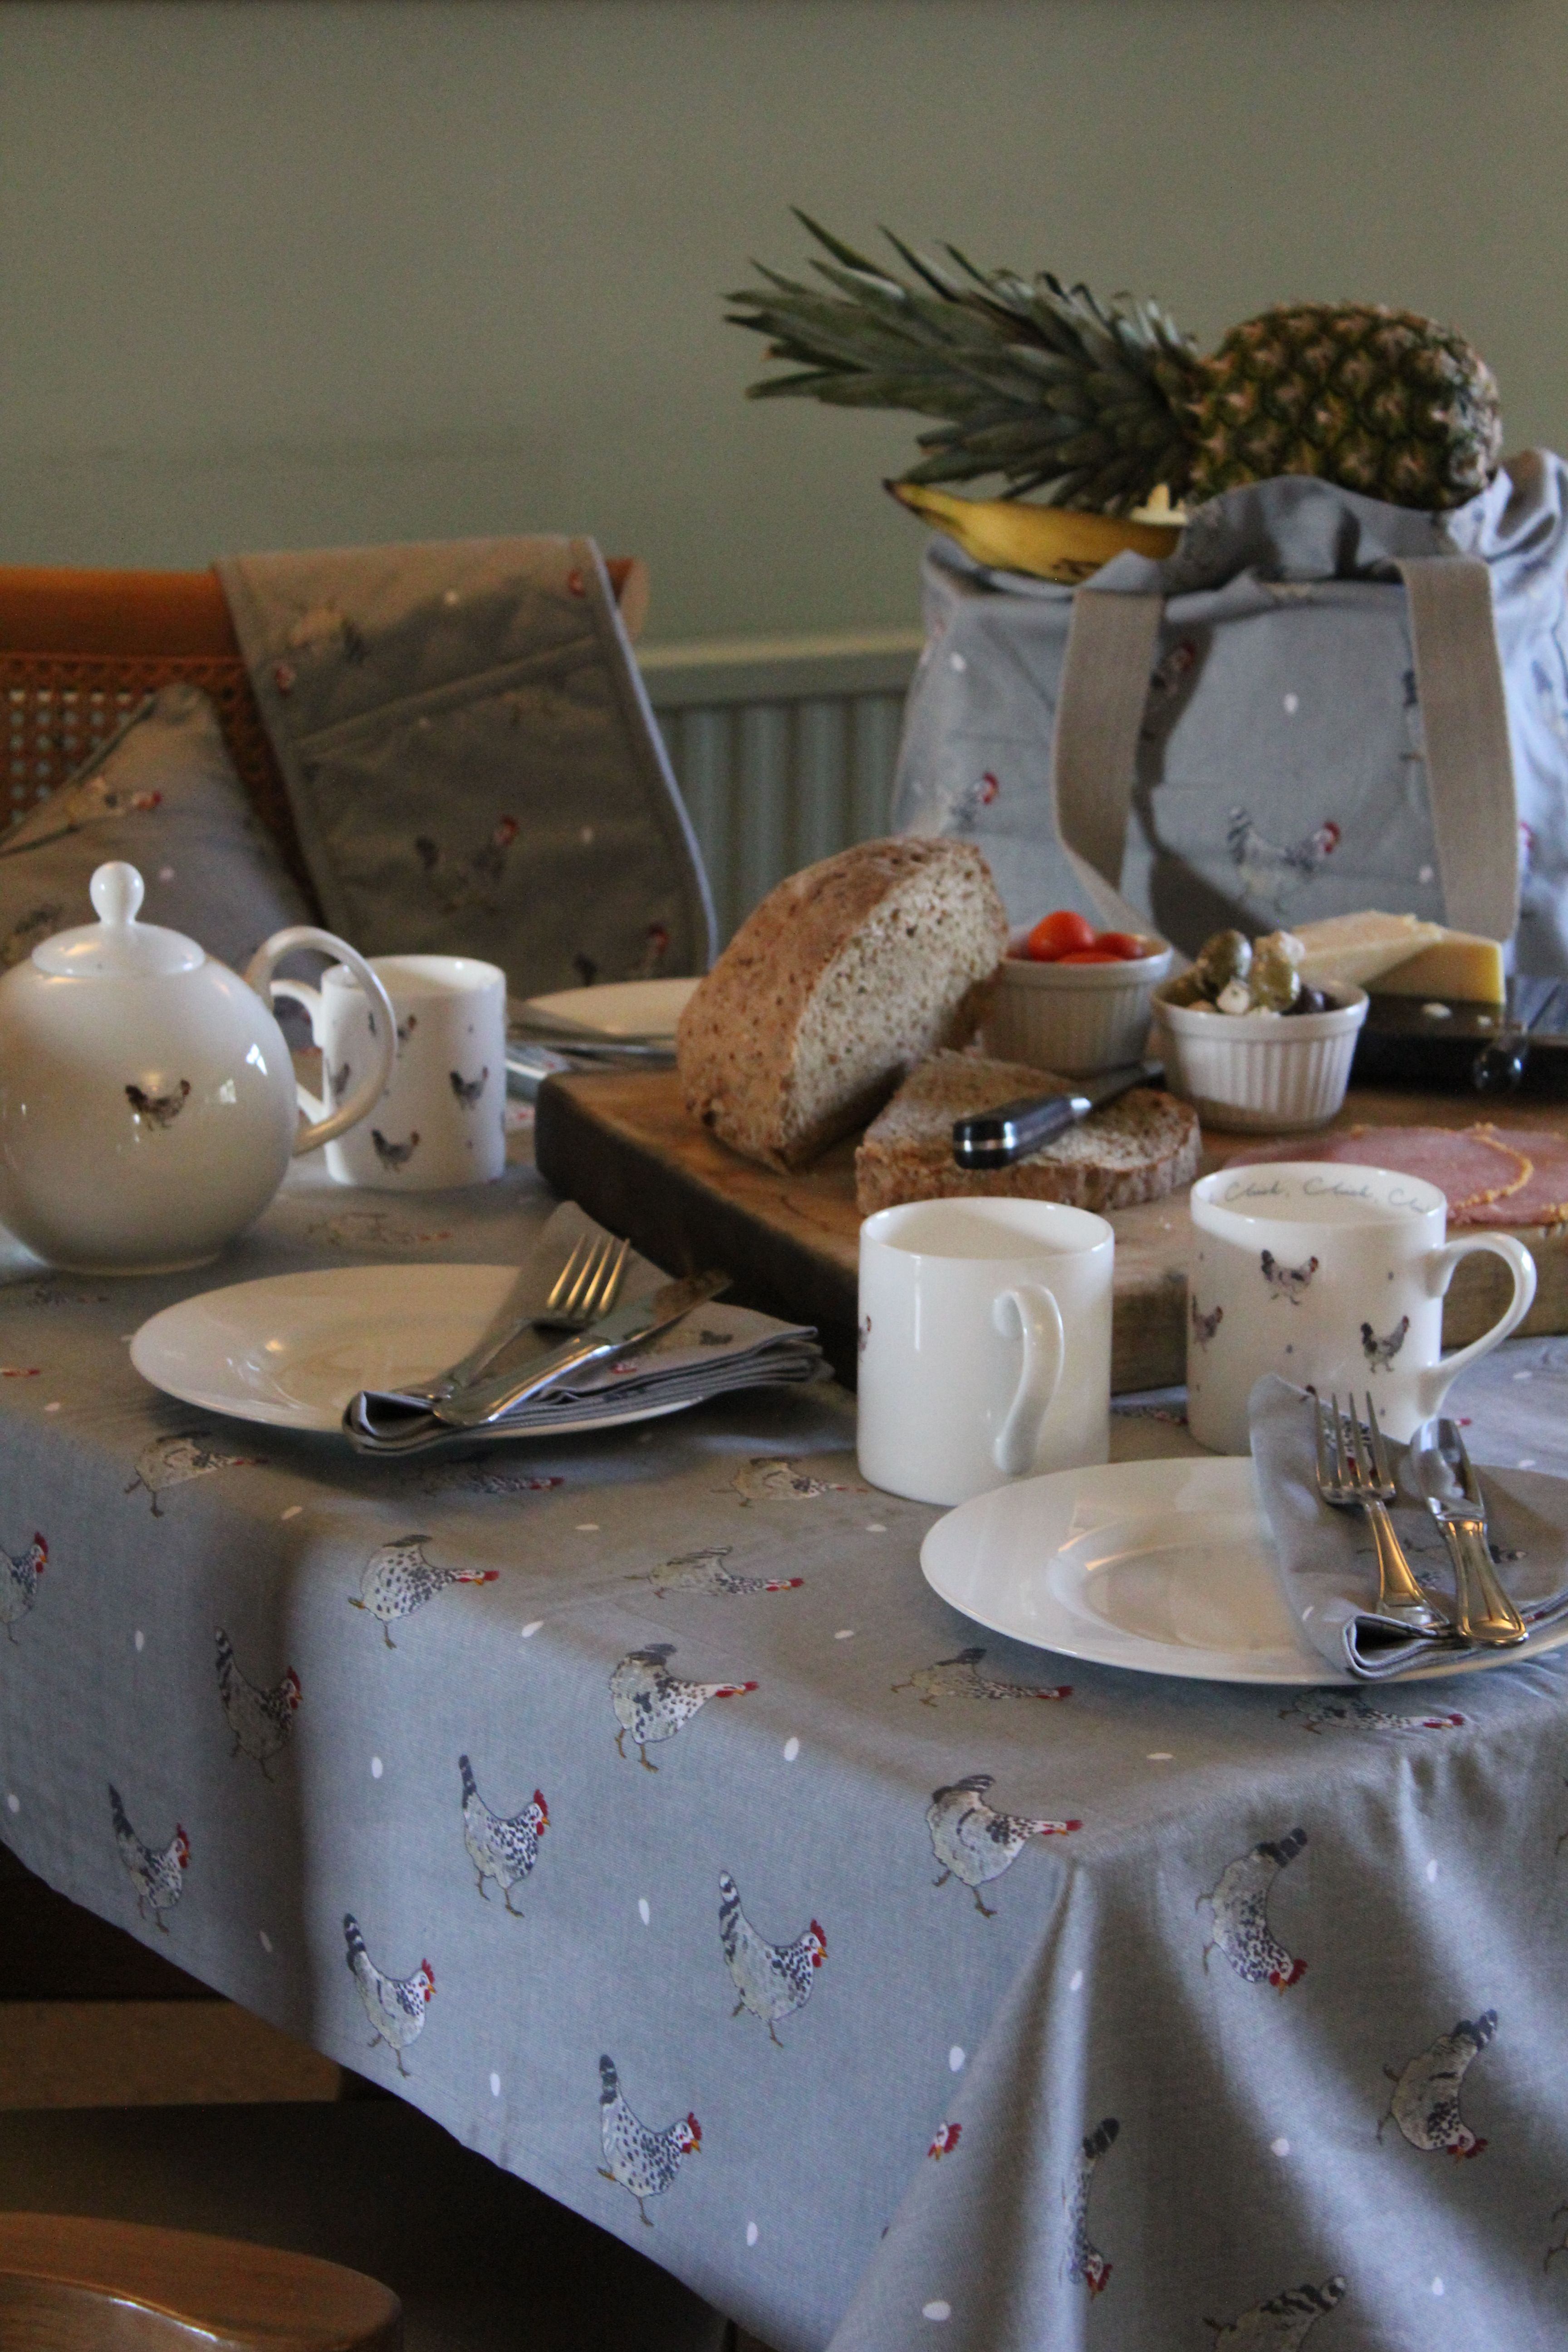 Granny is coming for #lunch so the table has been decorated in only the best #chicken designs by Sophie Allport; table cloths, tea pots and serviettes all done in the finest #poultry style. Guaranteed to impress.